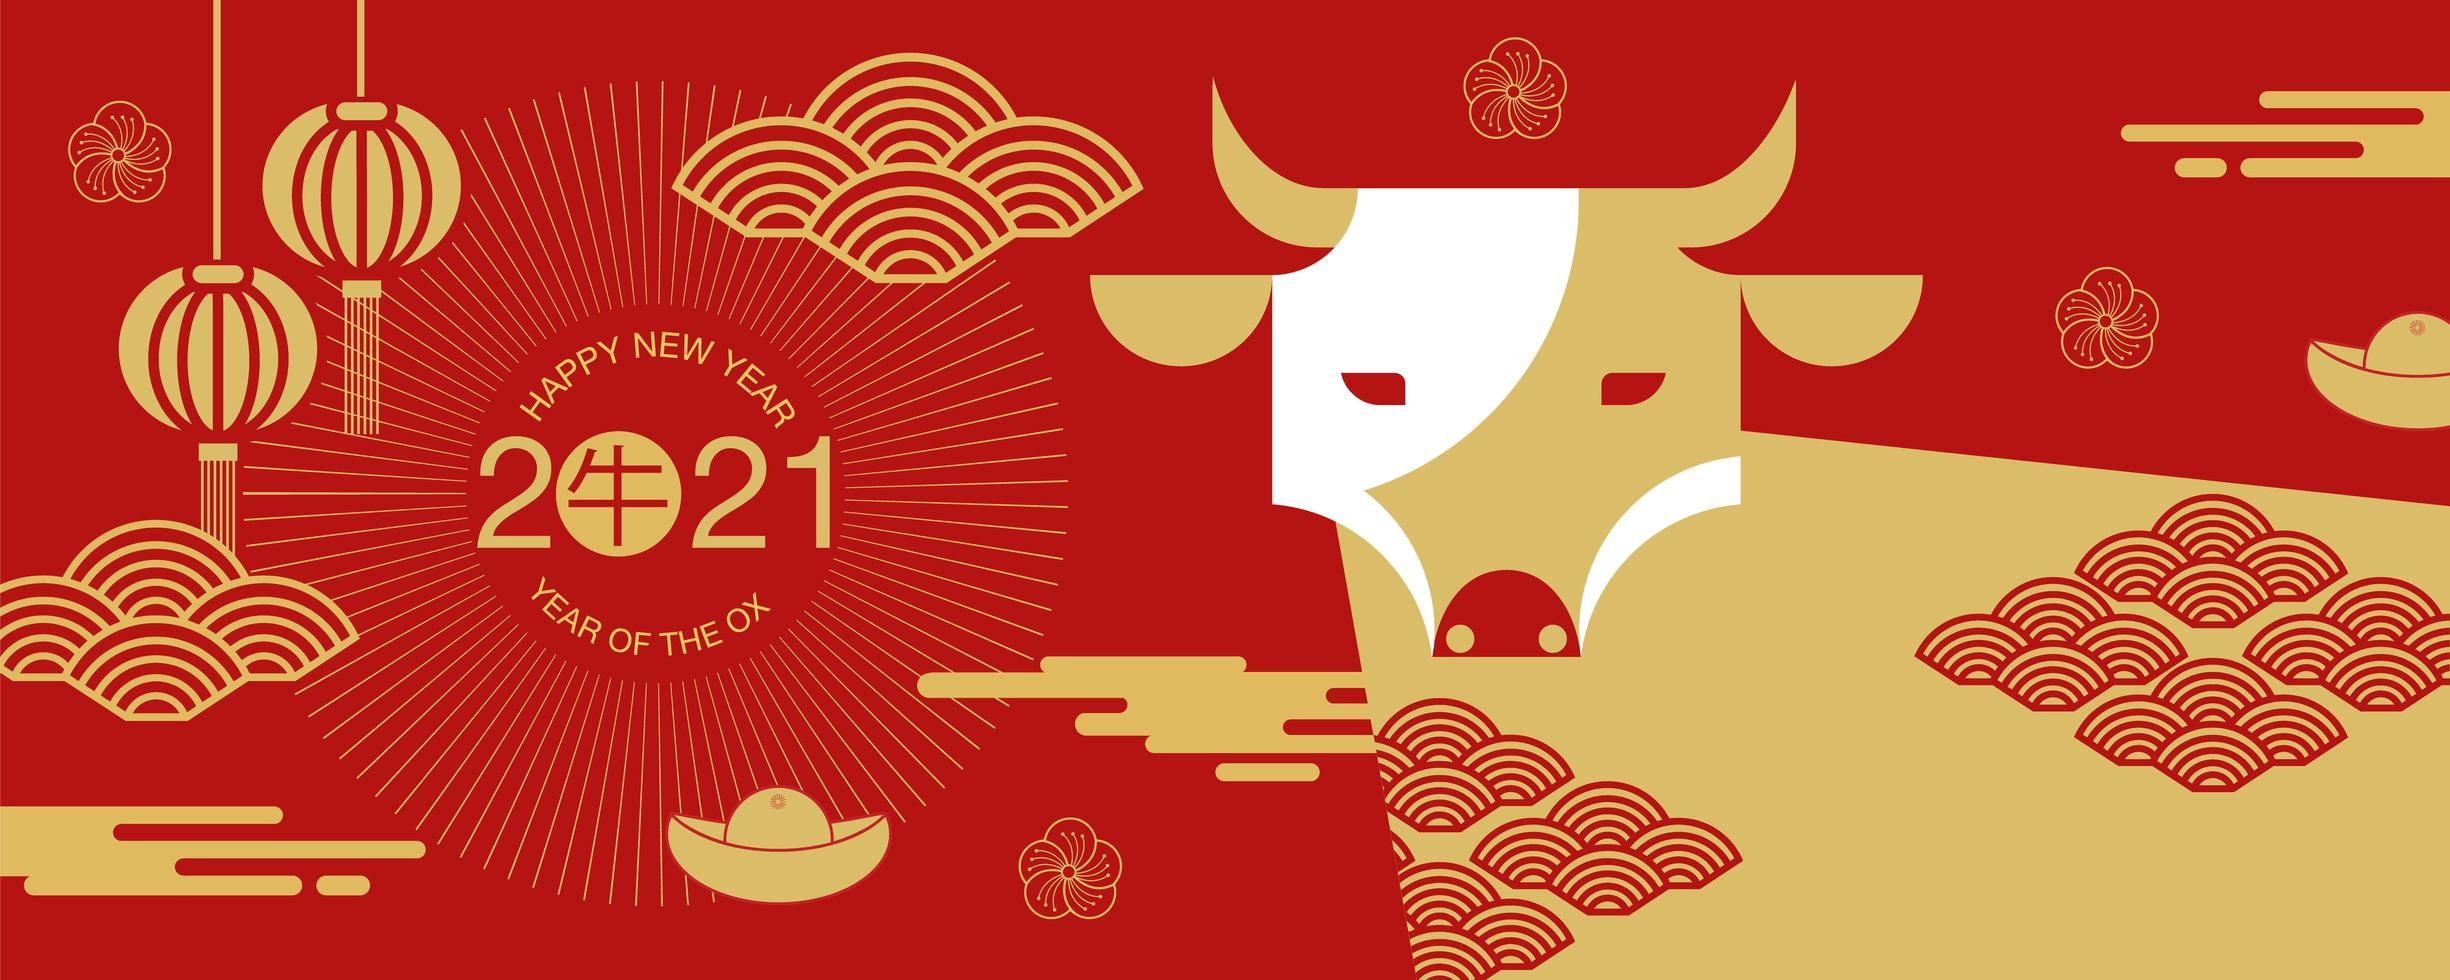 Chinese new year 2021 banner with front view of ox - Download Free Vectors,  Clipart Graphics & Vector Art